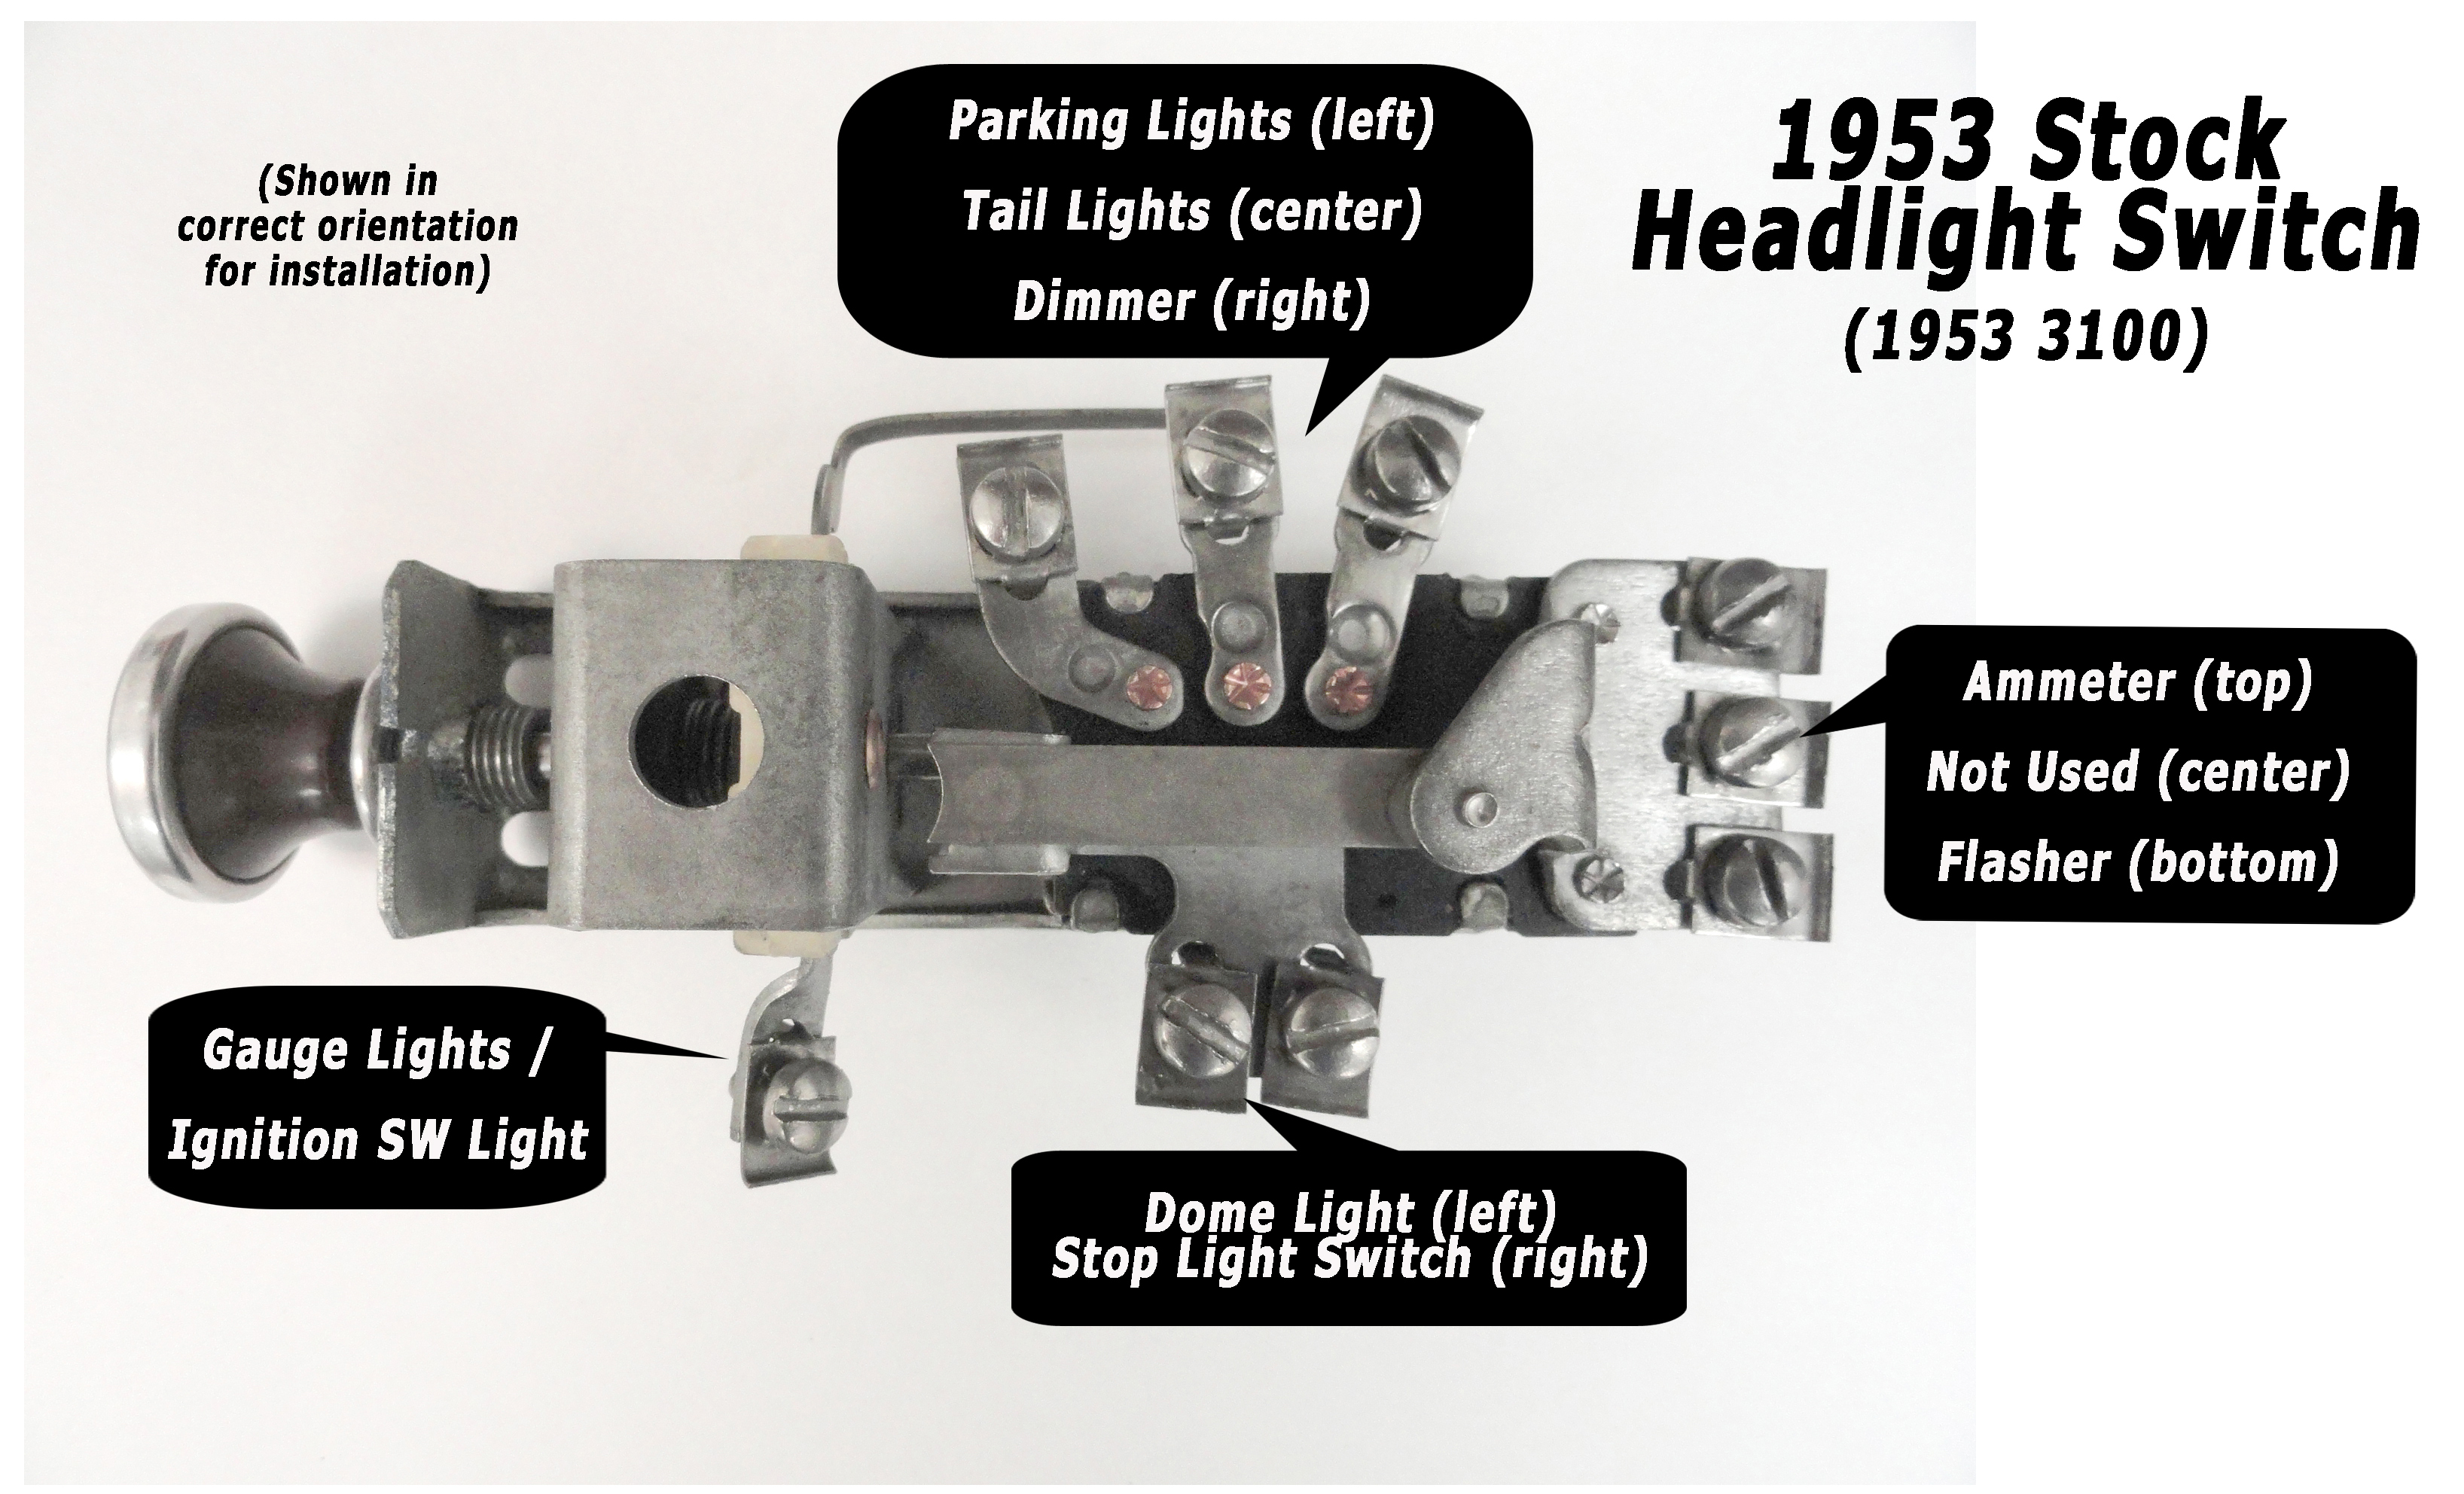 md_3110] 1953 chevy headlight switch wiring diagram wiring diagram  pical icaen sapebe barep mohammedshrine librar wiring 101